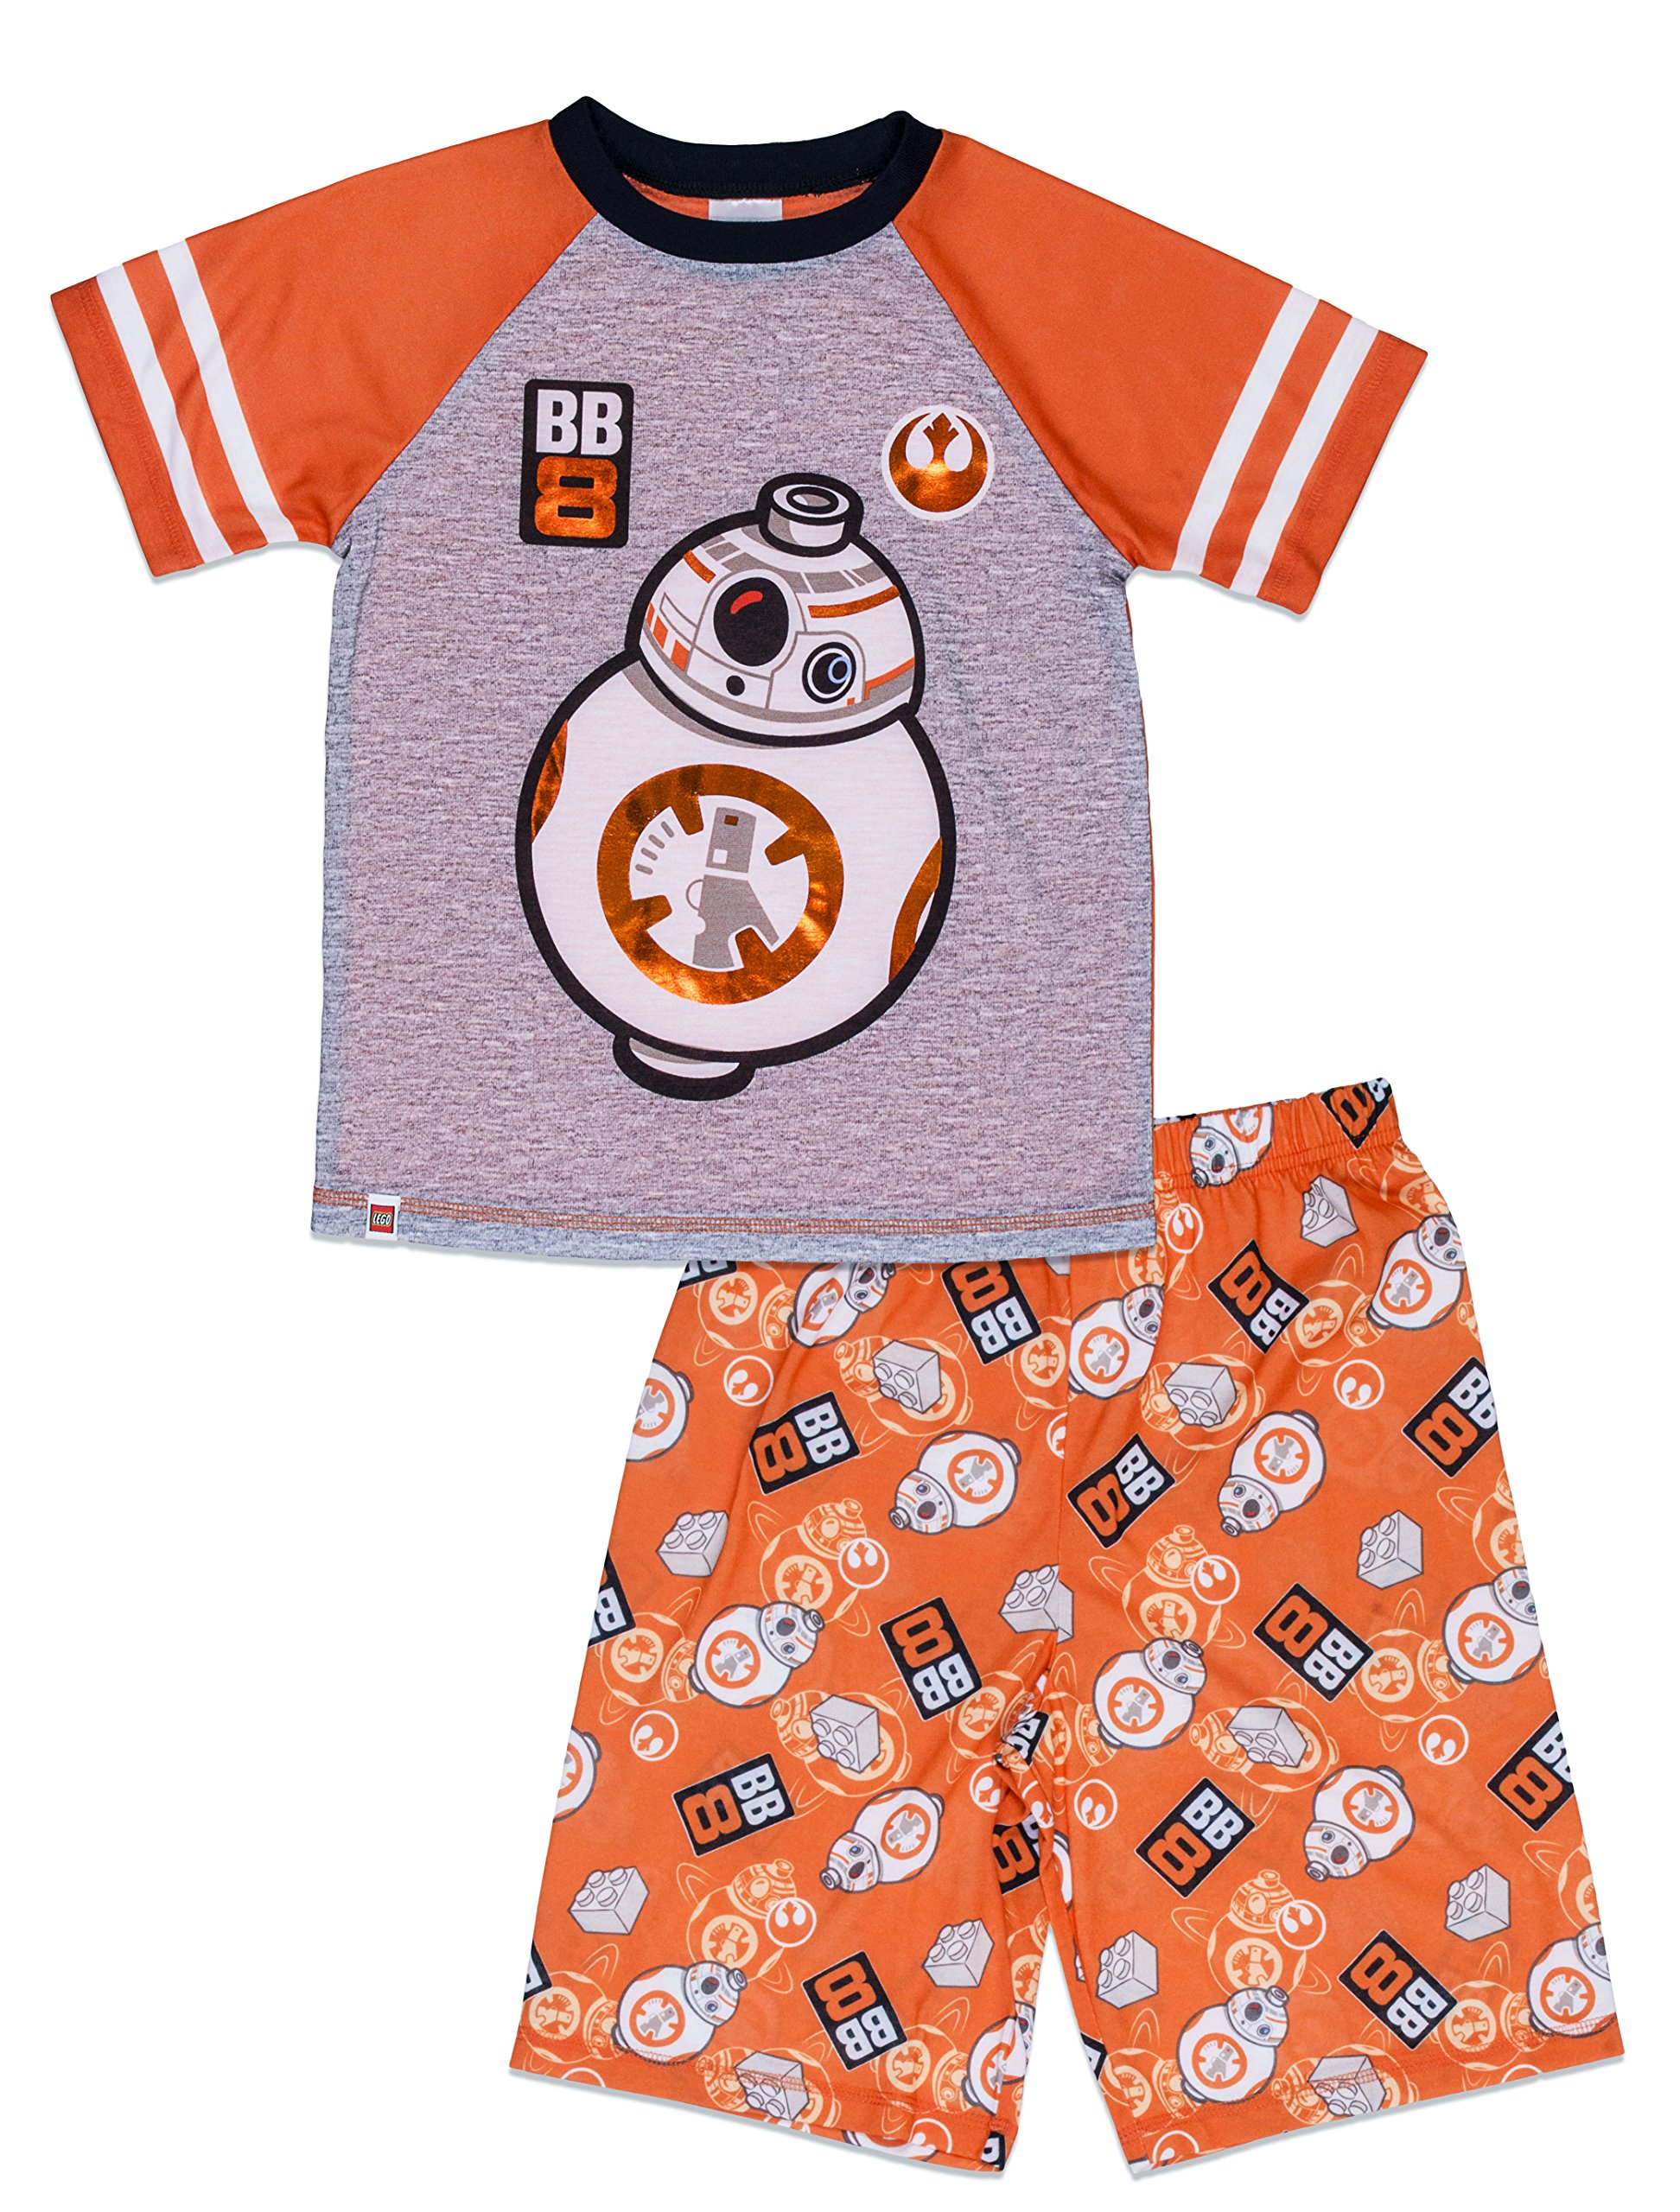 LEGO Star Wars Big Boys' BB-8 2-Piece Pajama Short Set, Orggry, 6/7